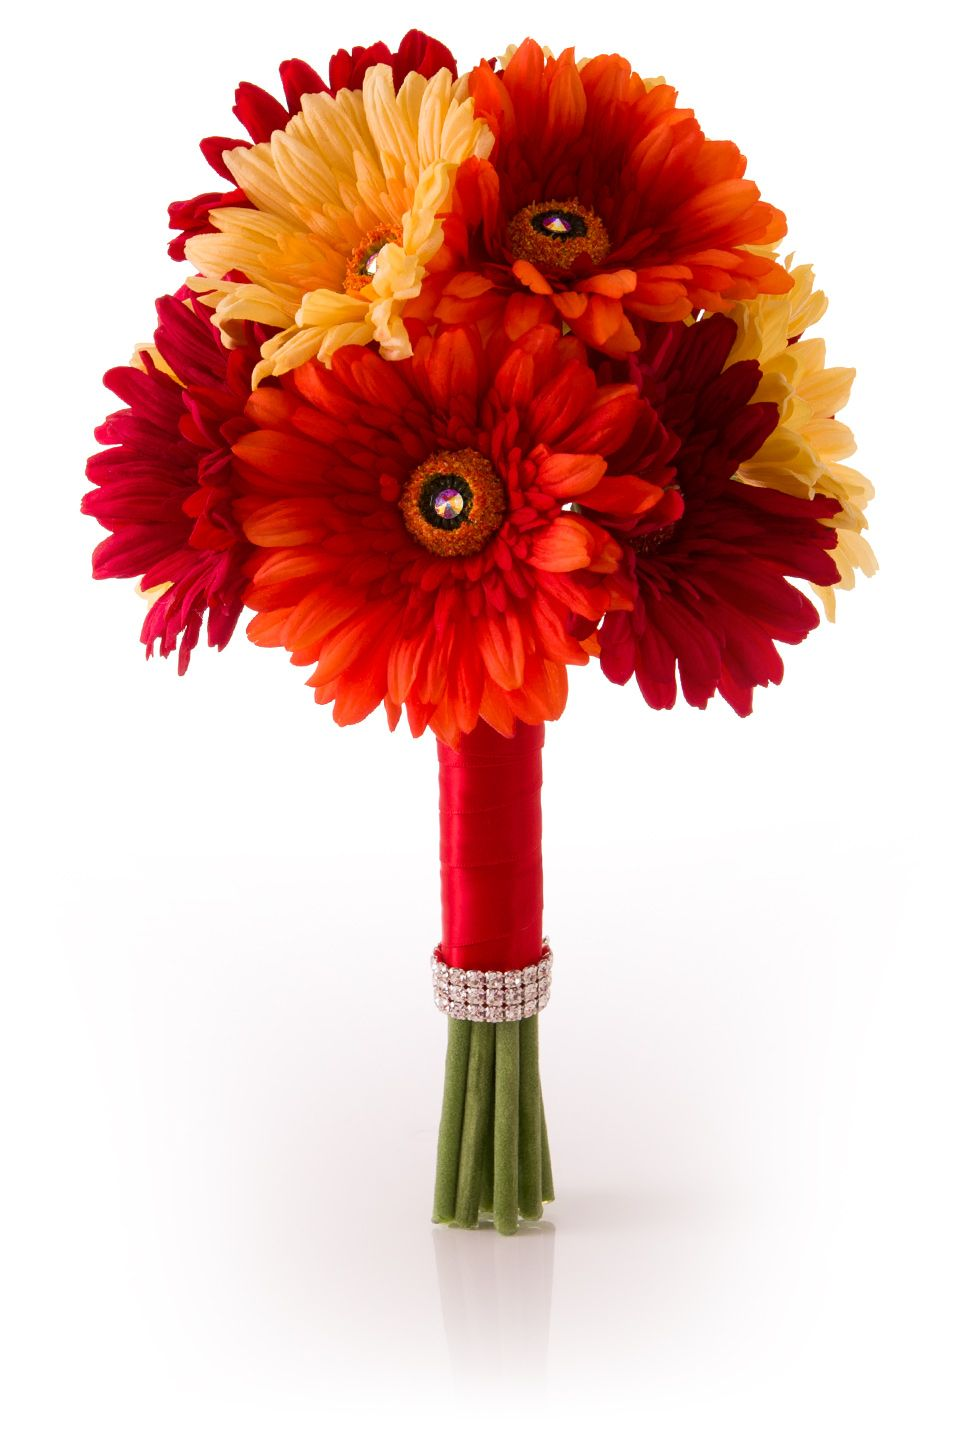 Gerbera daisy bridal bouquet in red yellow orange simply gerbera daisy bridal bouquet in red yellow orange simply gerbera in izmirmasajfo